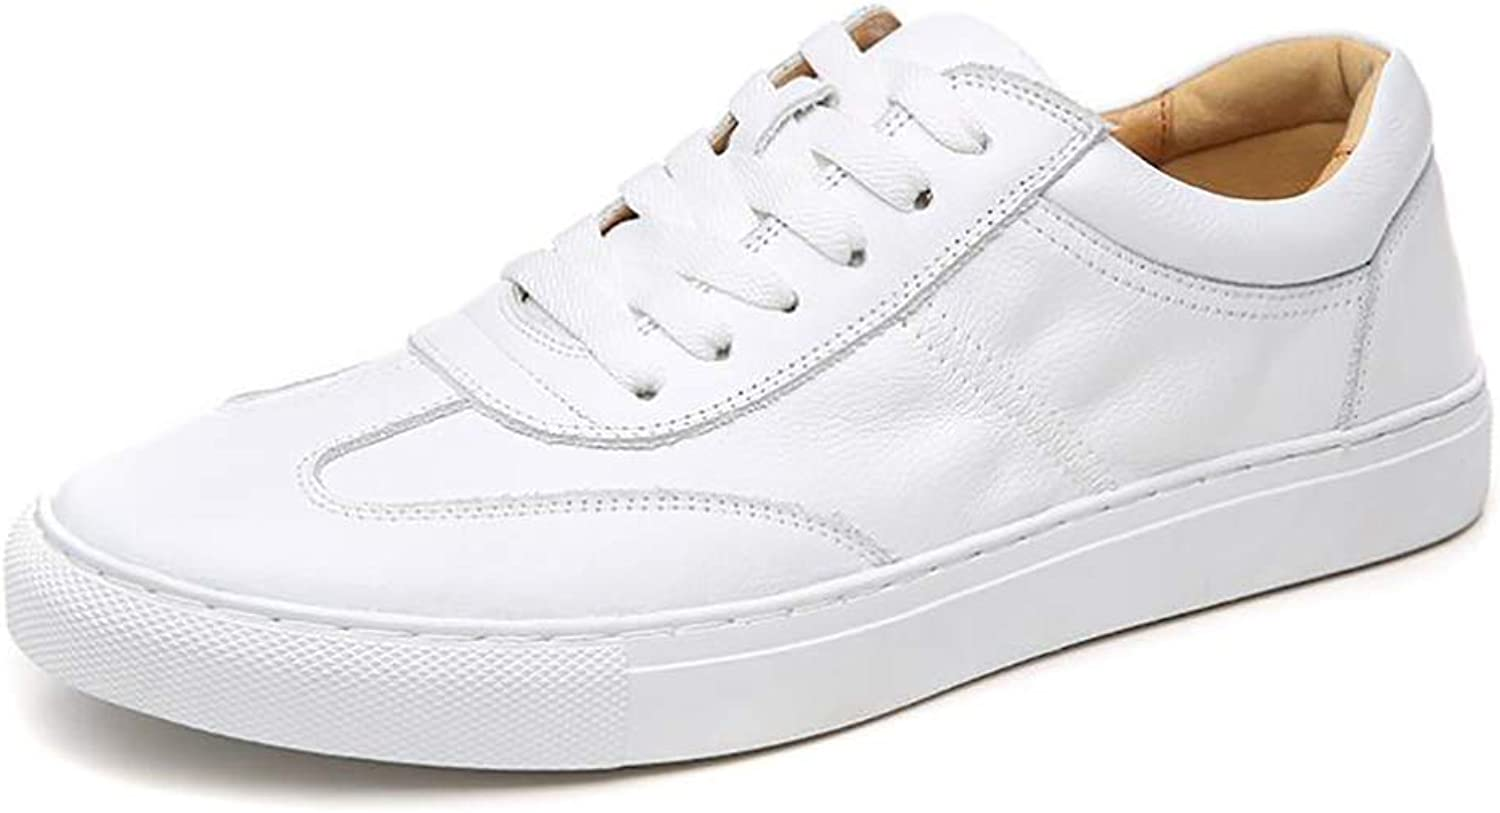 Men's shoes 2018 New Leather Lace-up shoes Men Casual Flat shoes Comfortable Breathable Small White shoes (color   A, Size   42)